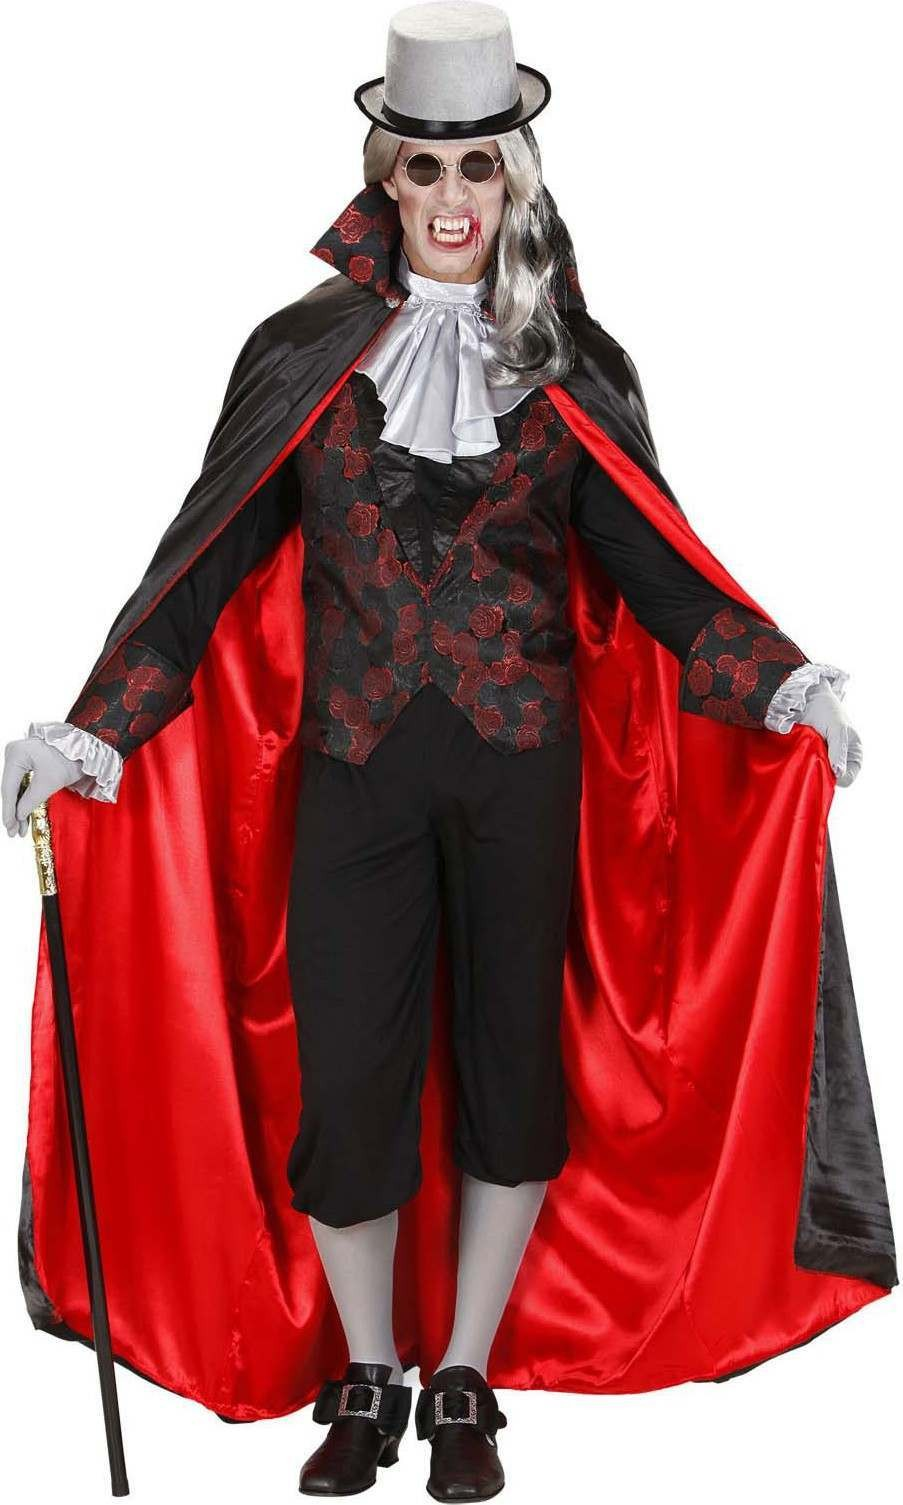 Mens Vampire- (Shirt W/Vest Jabot Cape) Halloween (Red, Black)